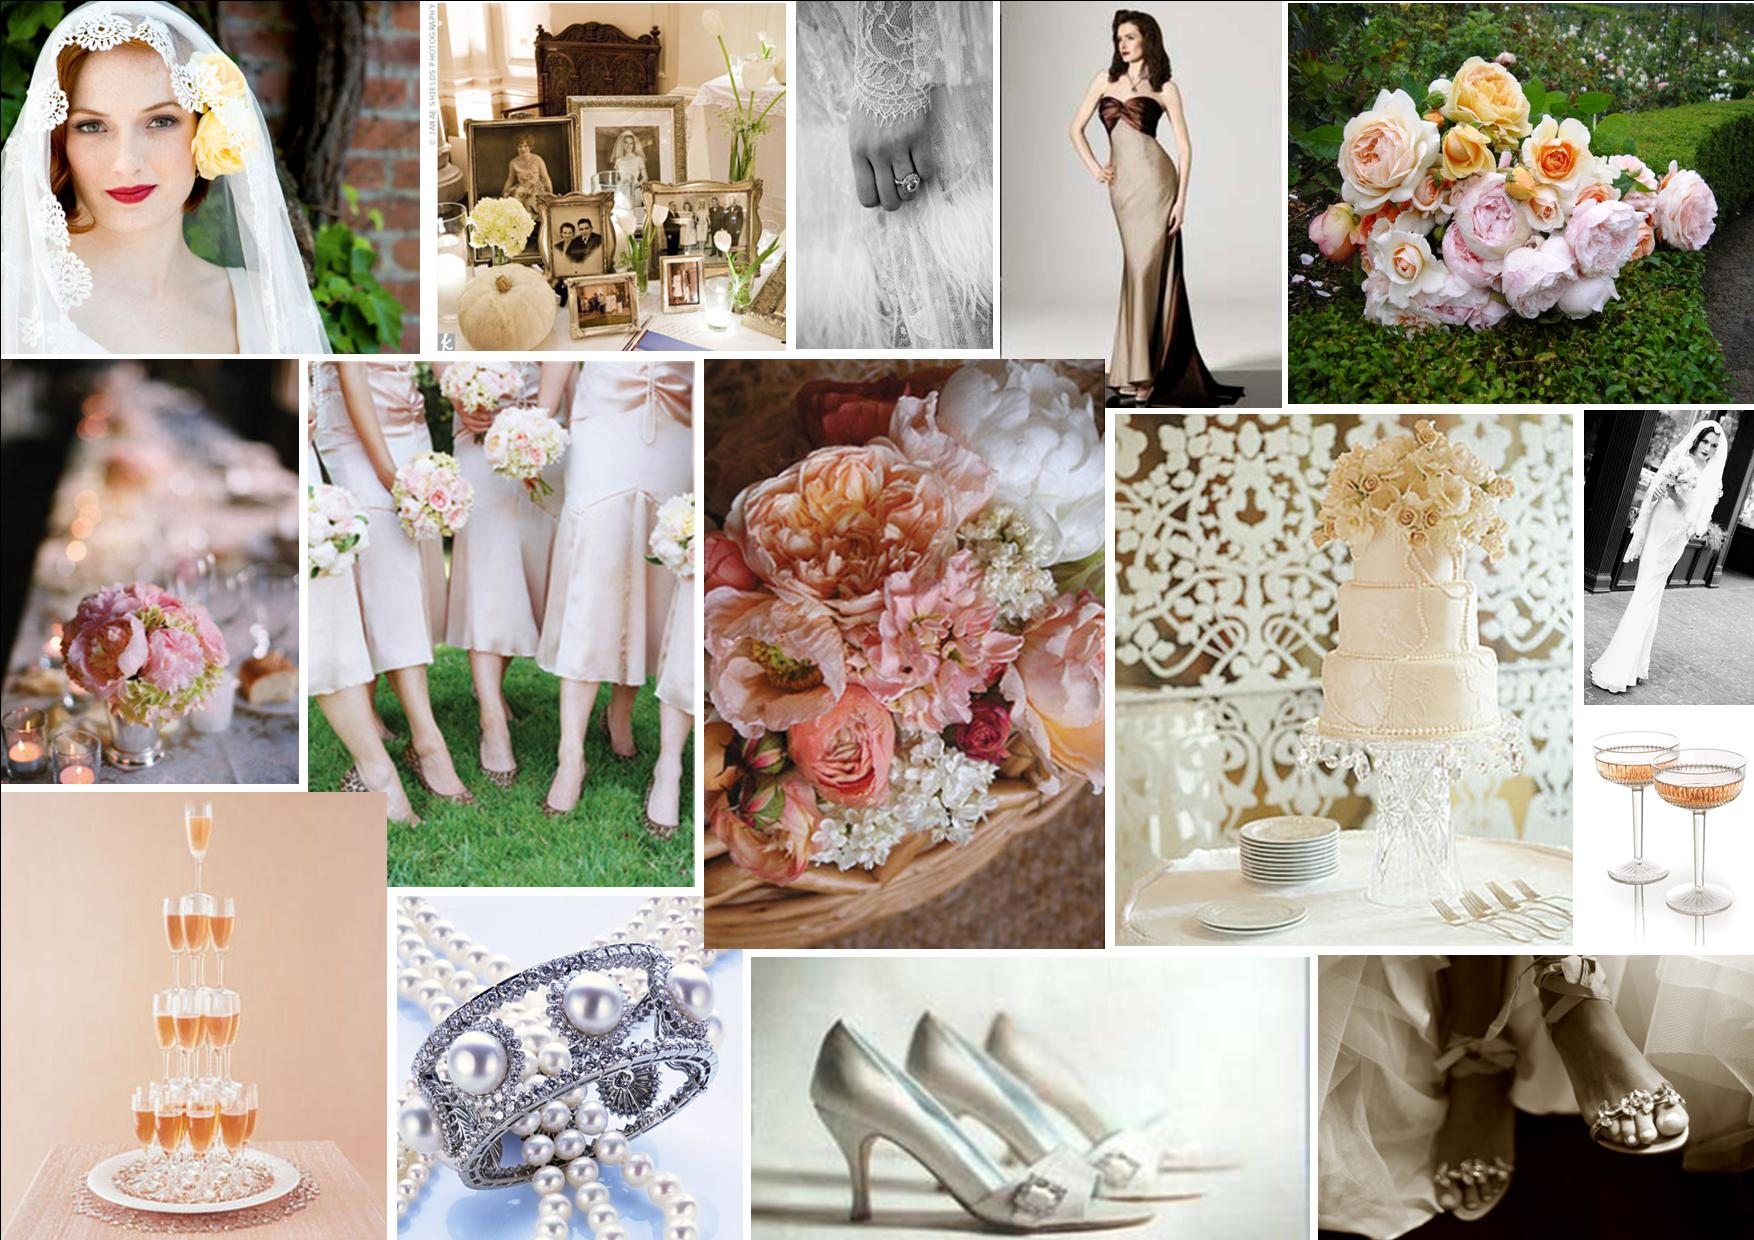 Wedding Theme – Vintage